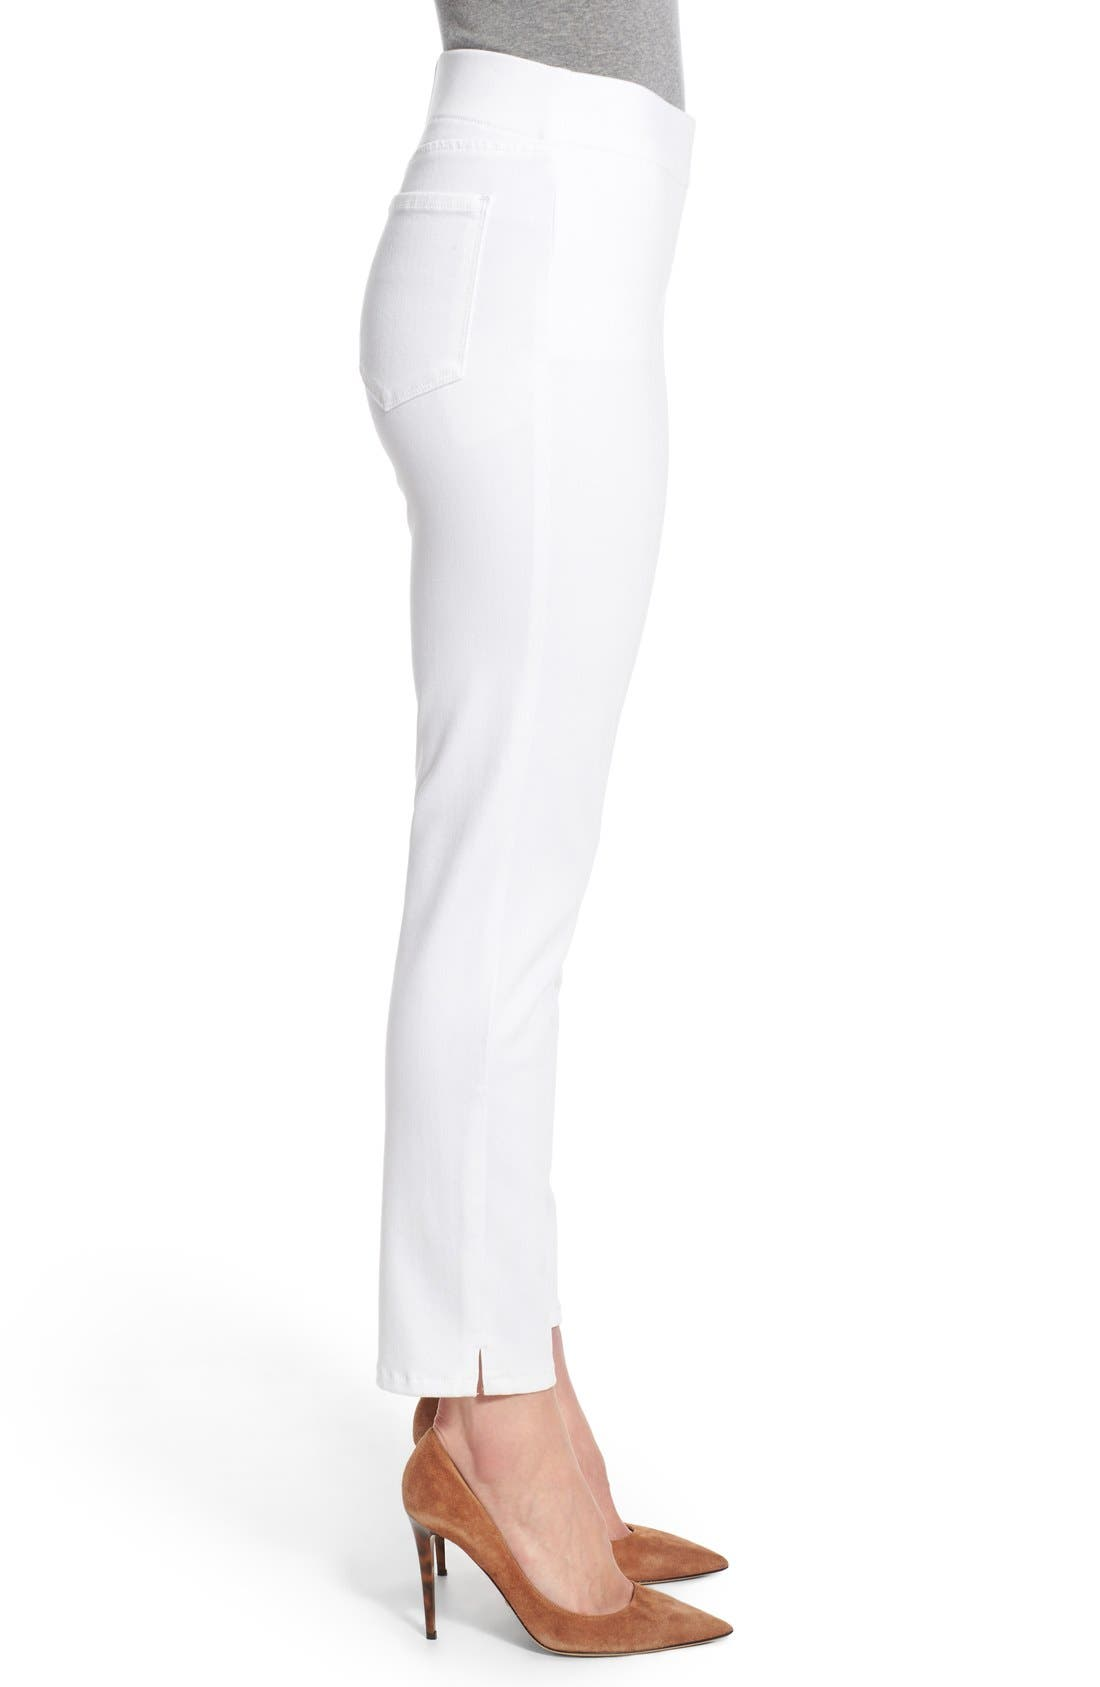 'Millie' Pull-On Stretch Ankle Skinny Jeans,                             Alternate thumbnail 6, color,                             198